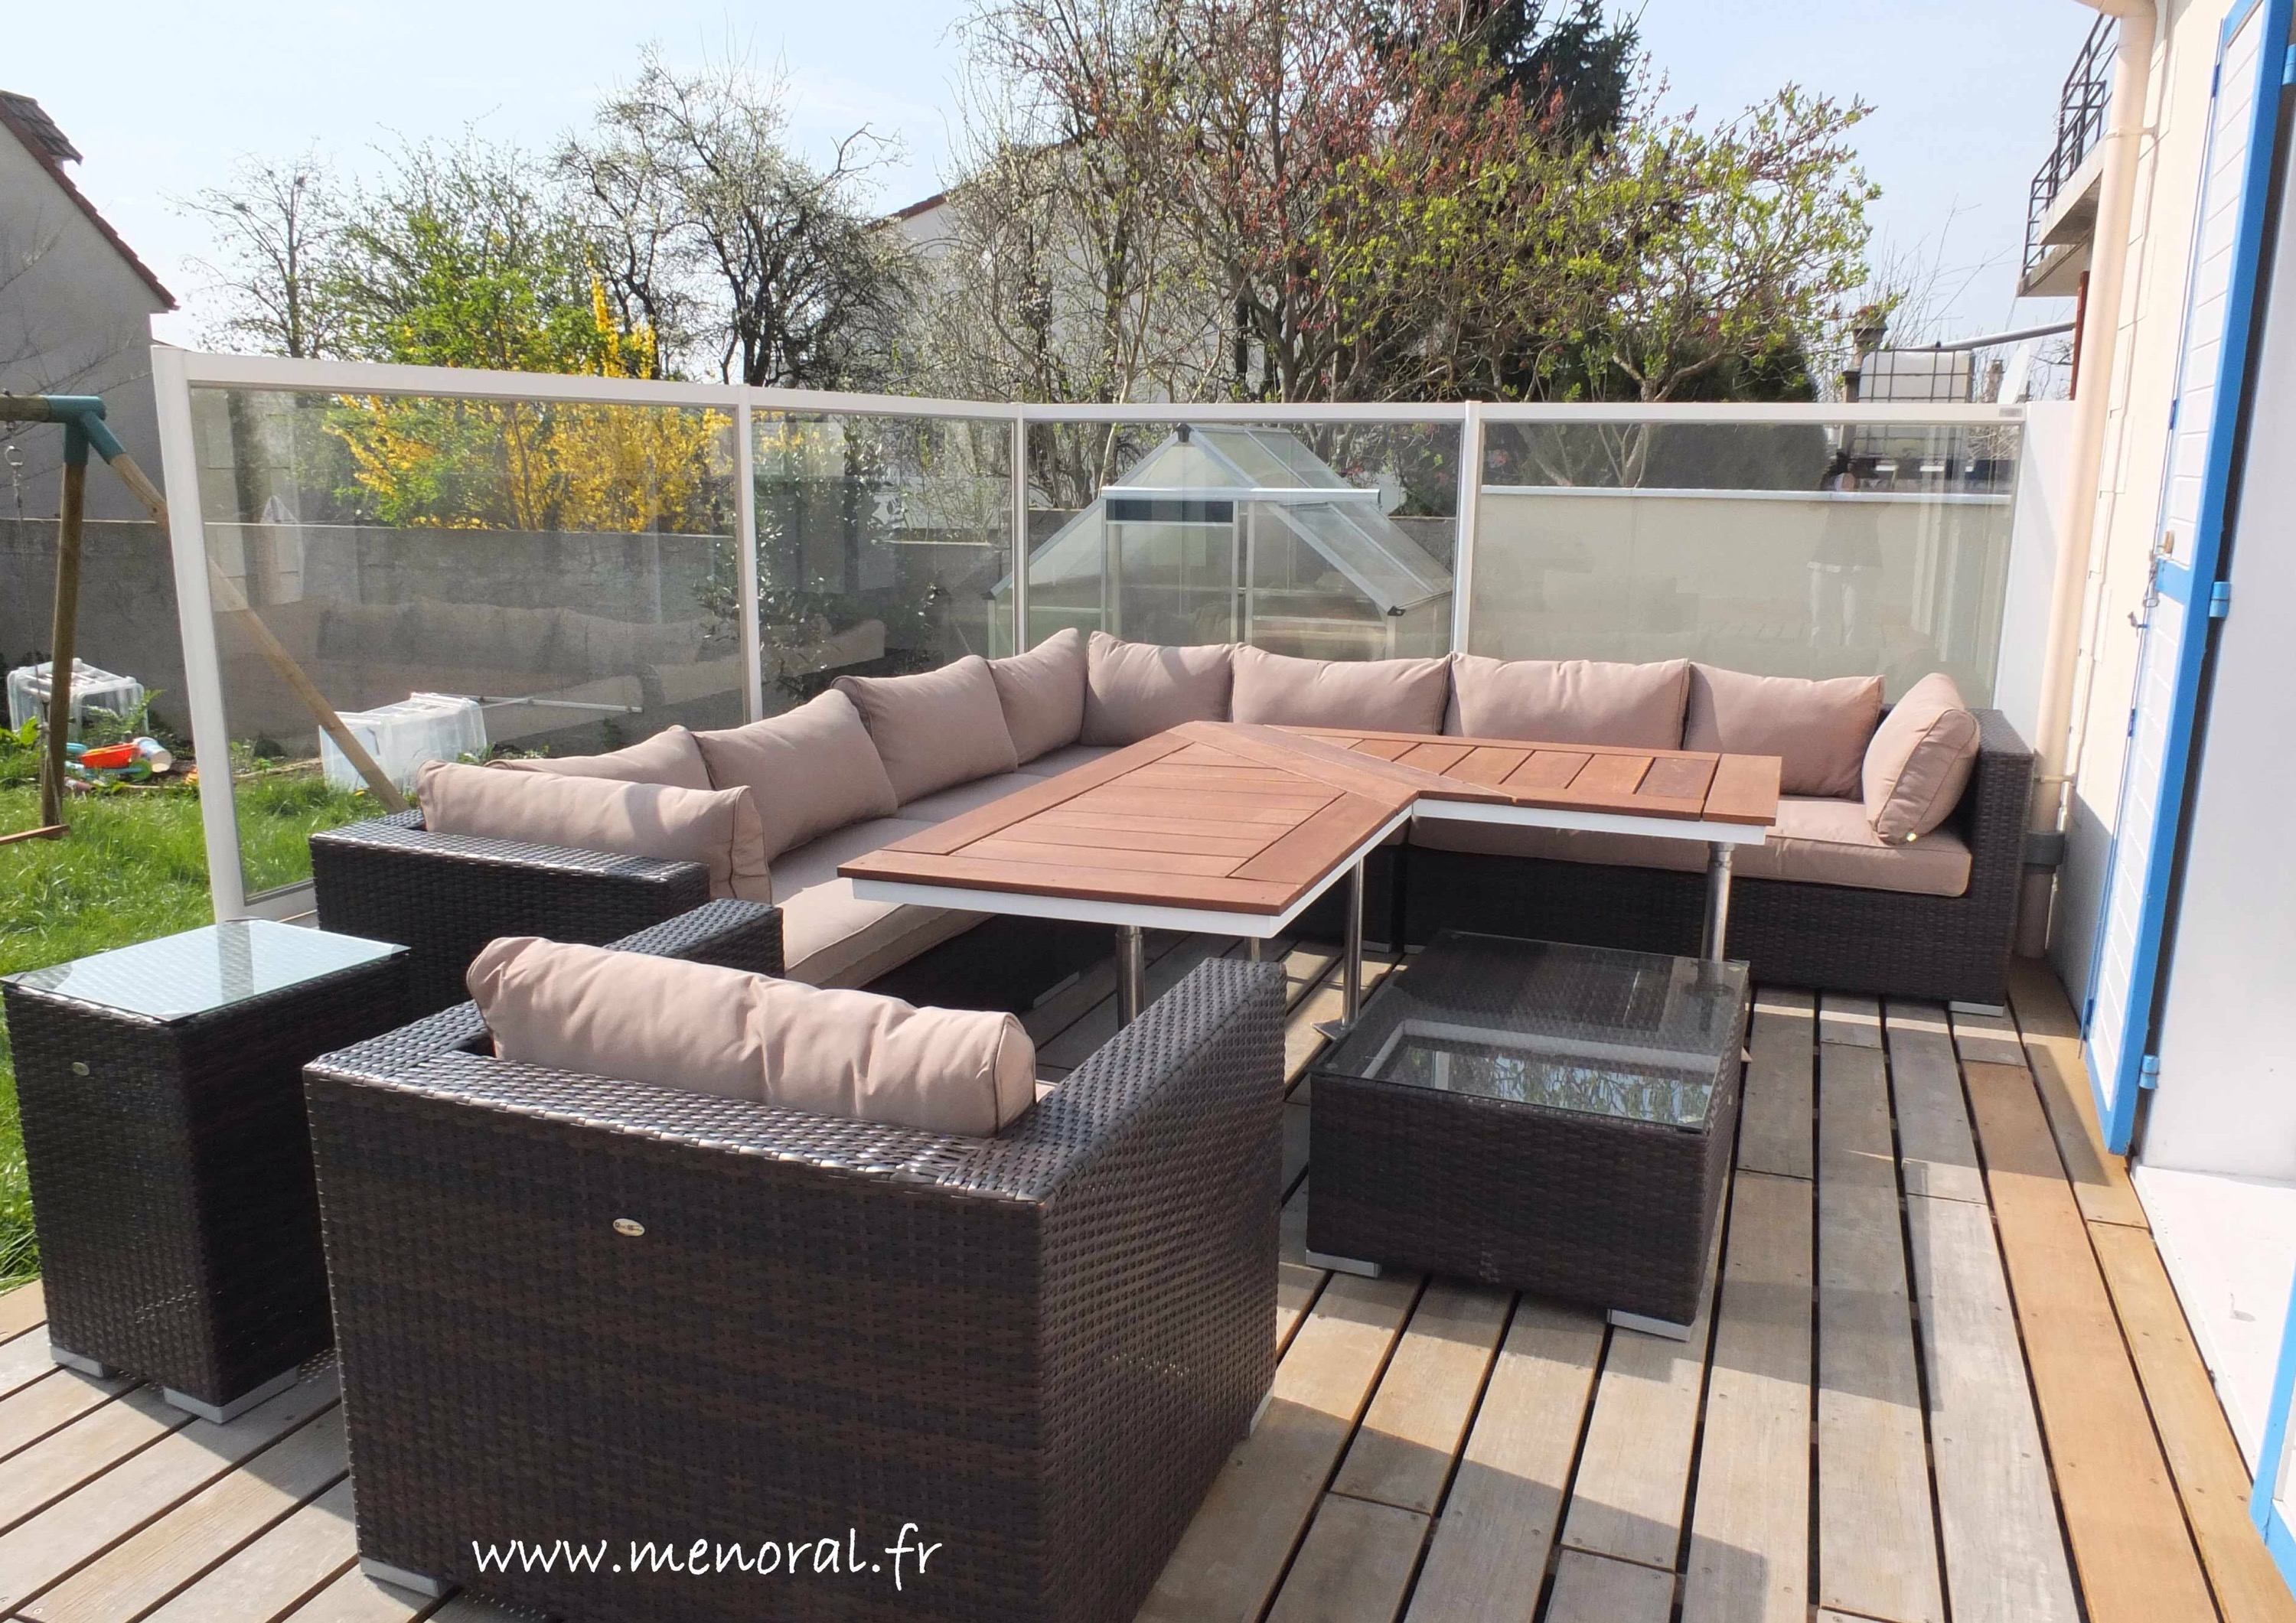 coupe vent en verre pour terrasse. Black Bedroom Furniture Sets. Home Design Ideas